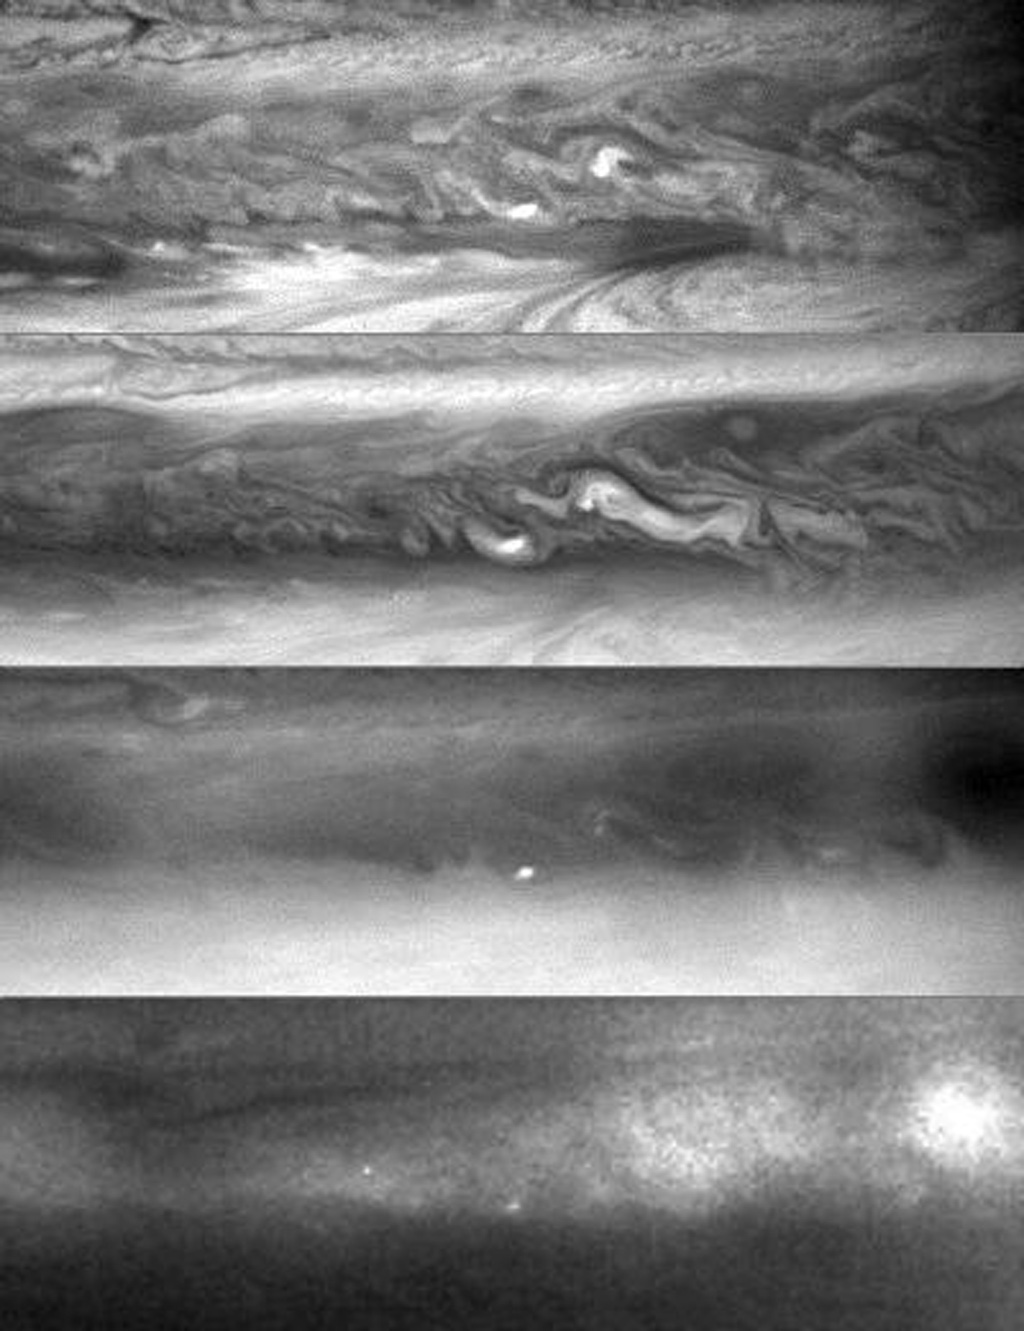 A four-panel frame shows a section of Jupiter's north equatorial belt viewed by NASA's Cassini spacecraft at four different wavelengths, and a separate reference frame shows the location of the belt on the planet.